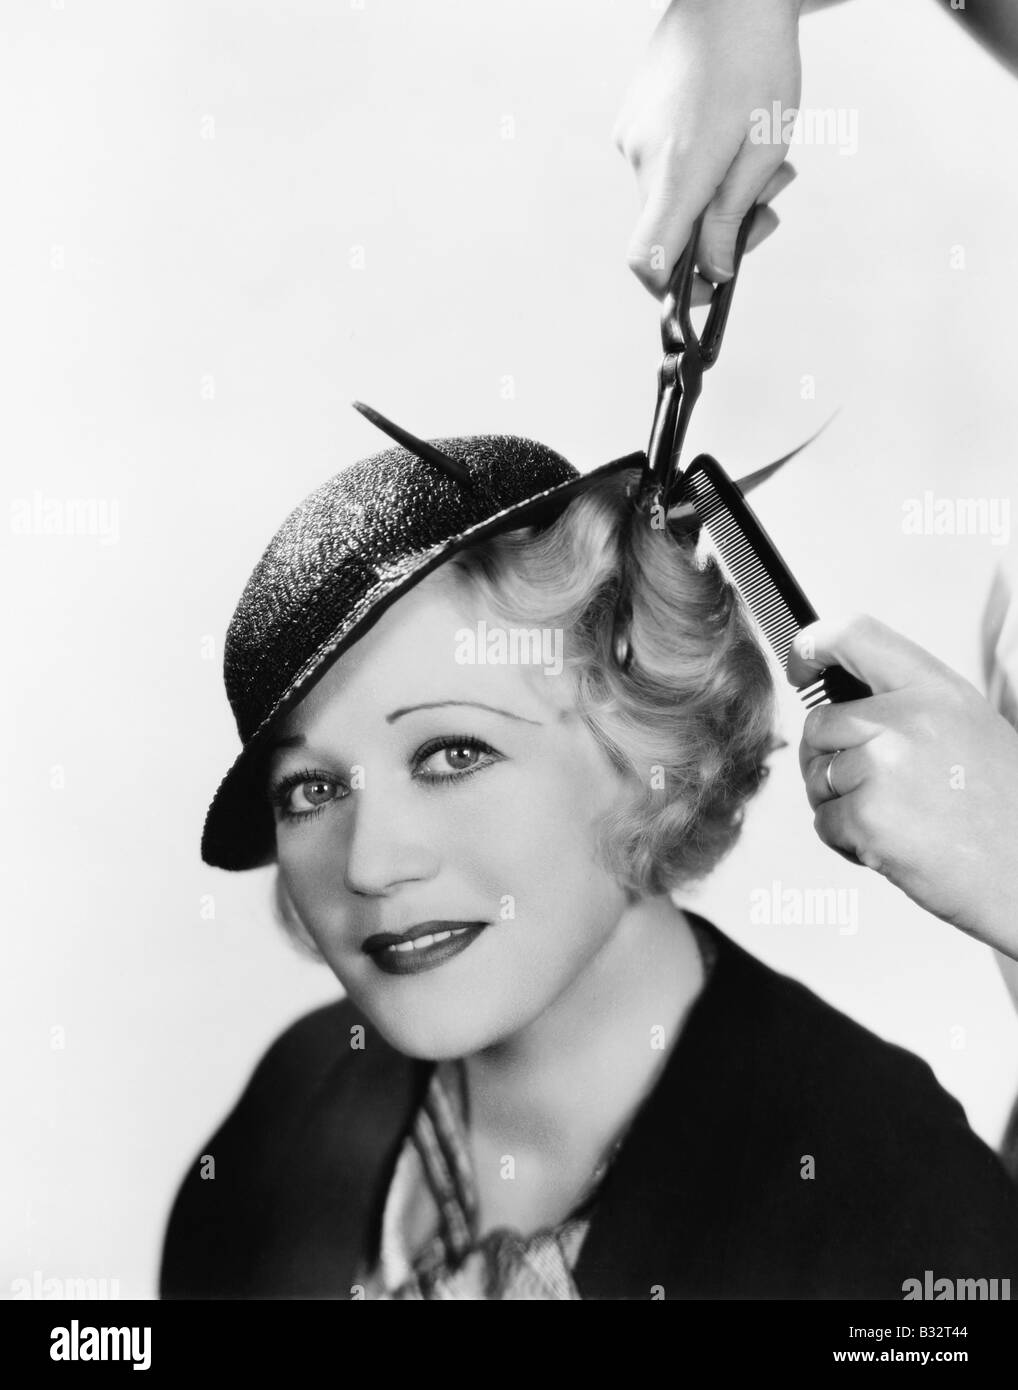 Portrait of a young woman getting her hair curled with an iron - Stock Image